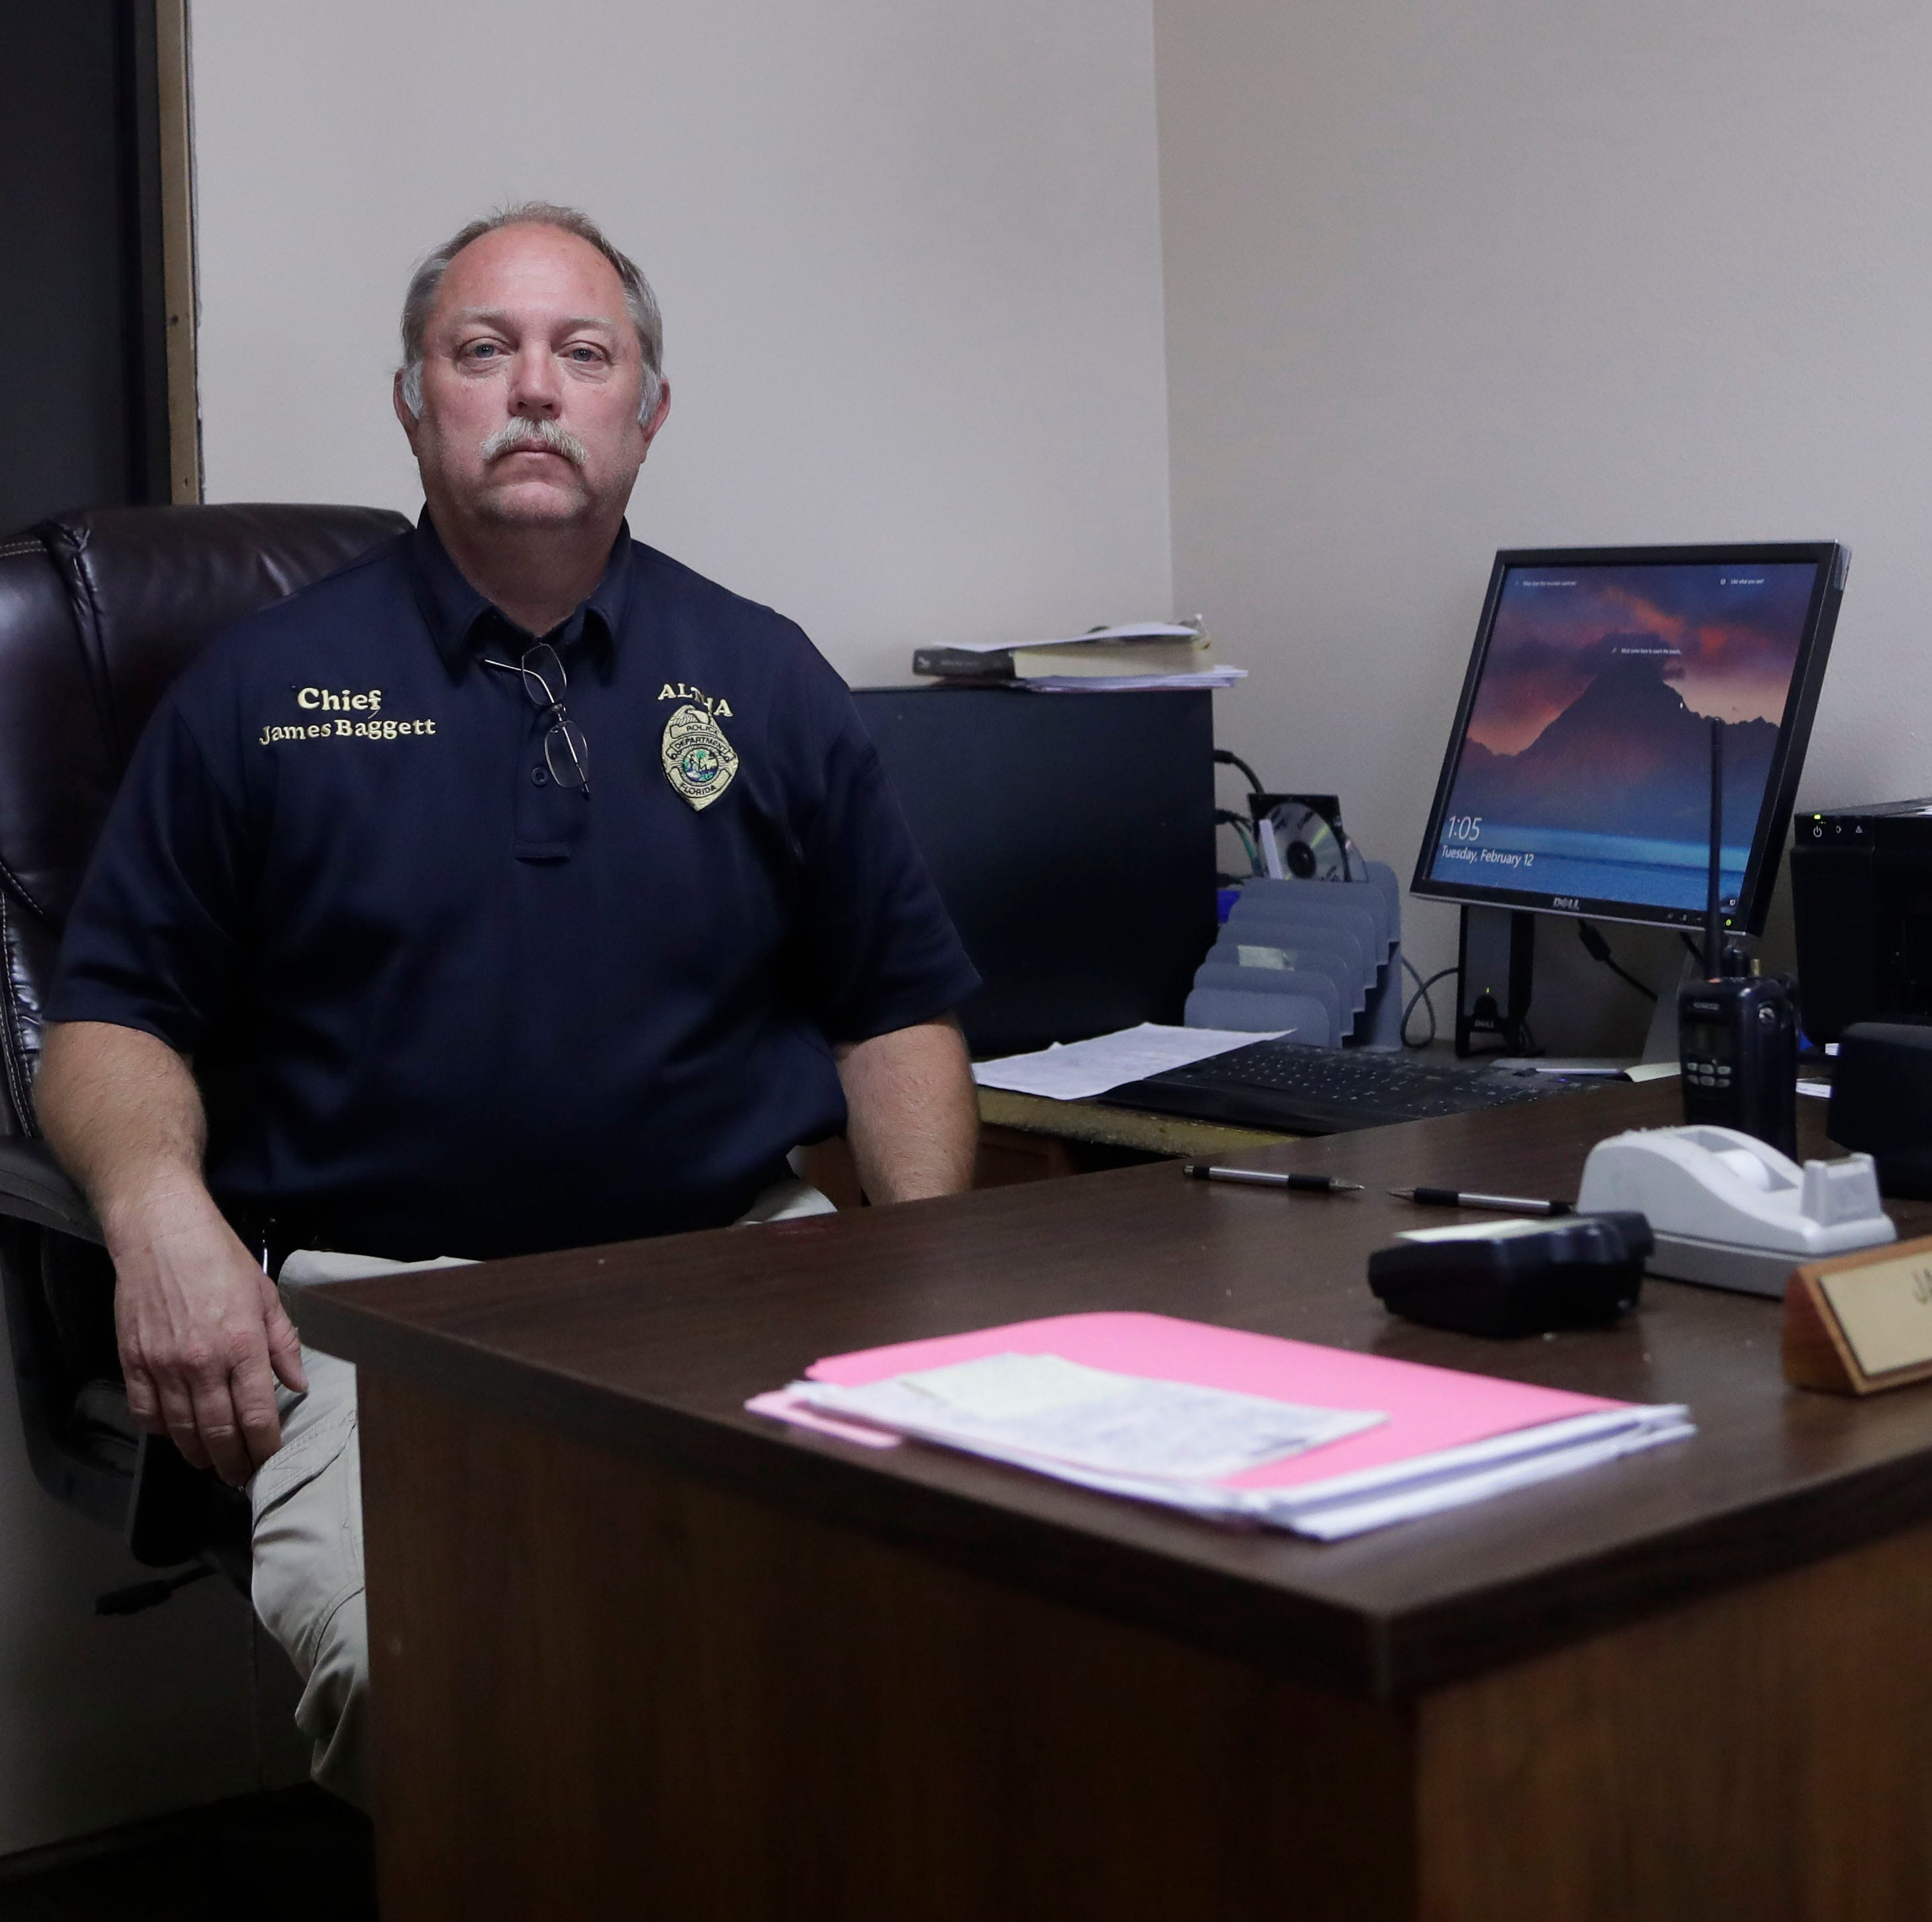 Crossing guard, garbage man, Mr. Fix-it: Altha police chief does it all after Hurricane Michael